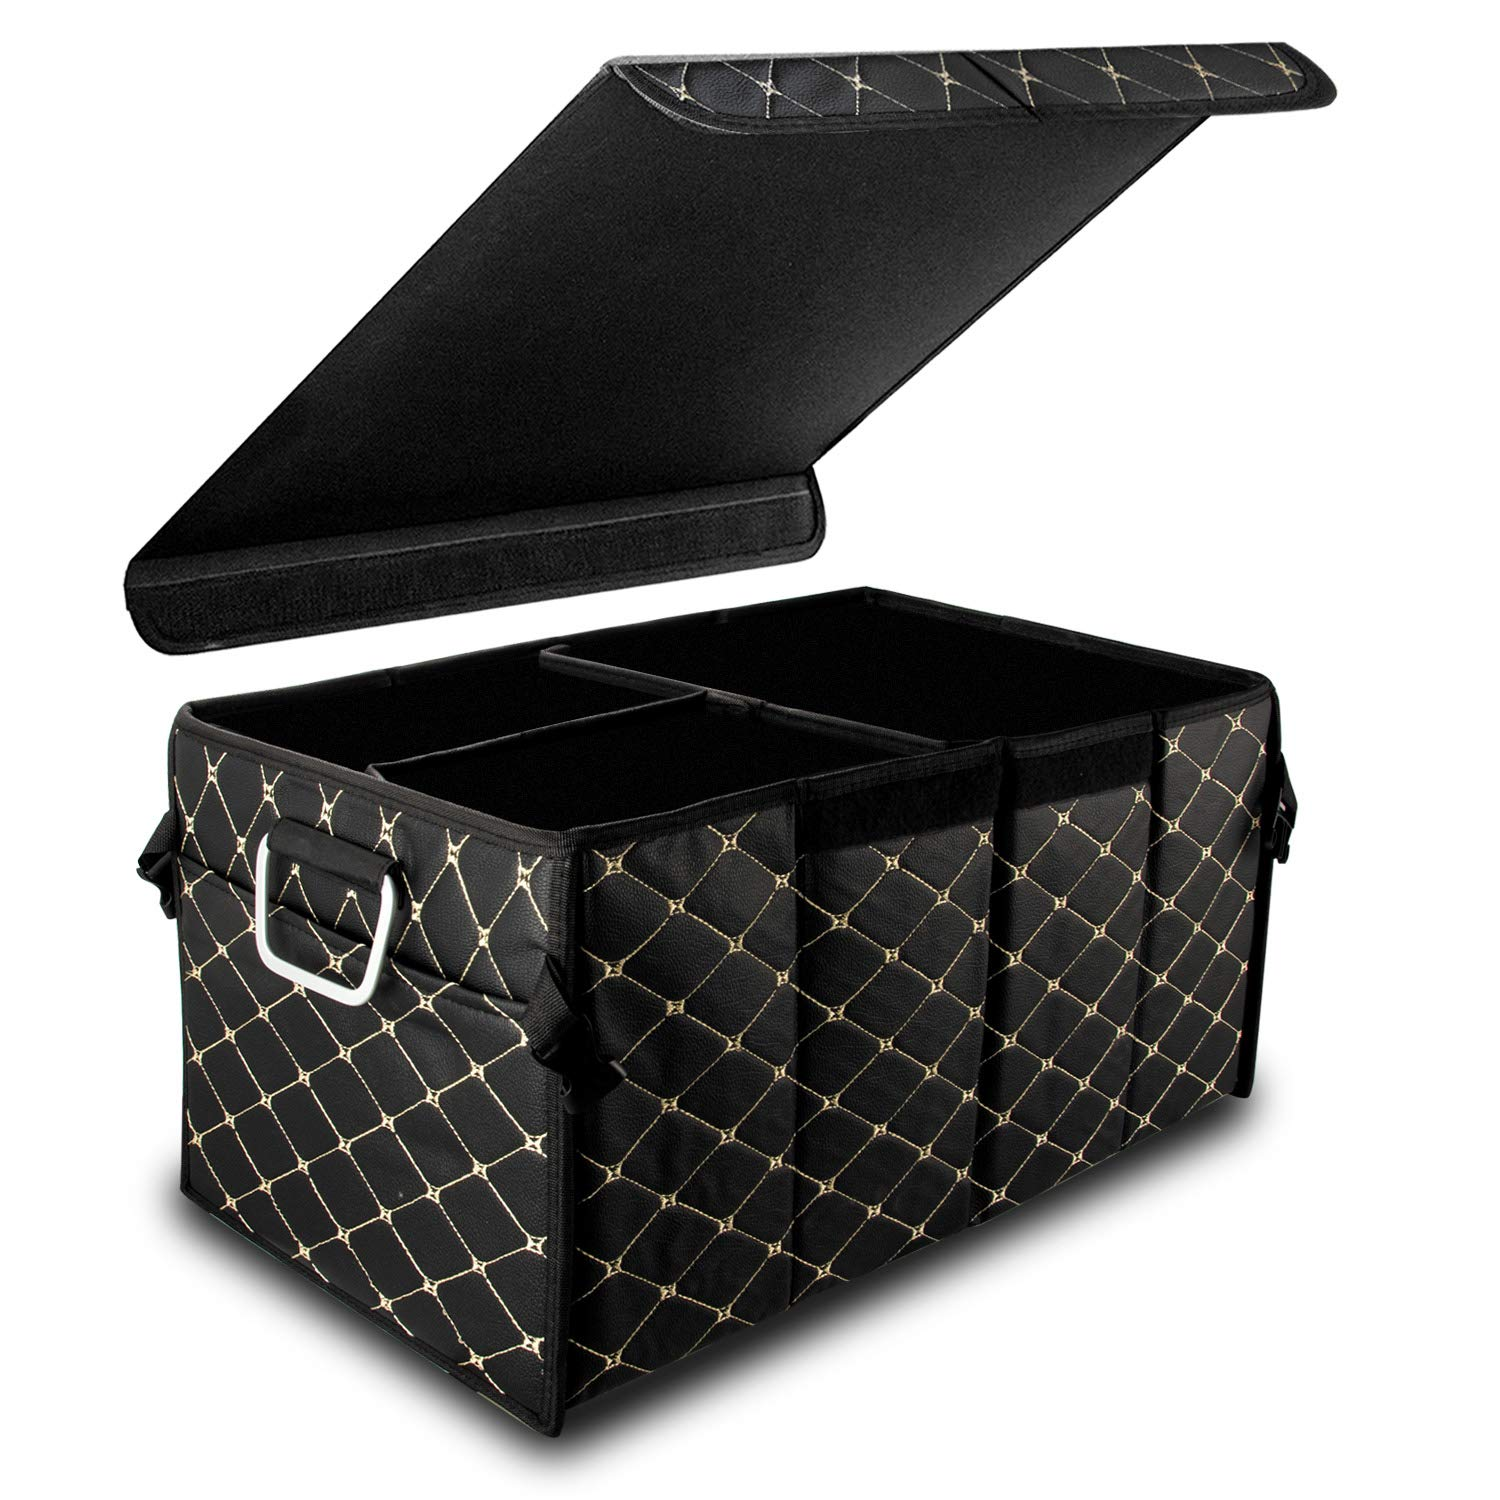 DZG Car Boot Organiser Trunk Container Storage Box Foldable Tail Tidy Collapsible Waterproof Durable Leather Universal Indoor Outdoor Small